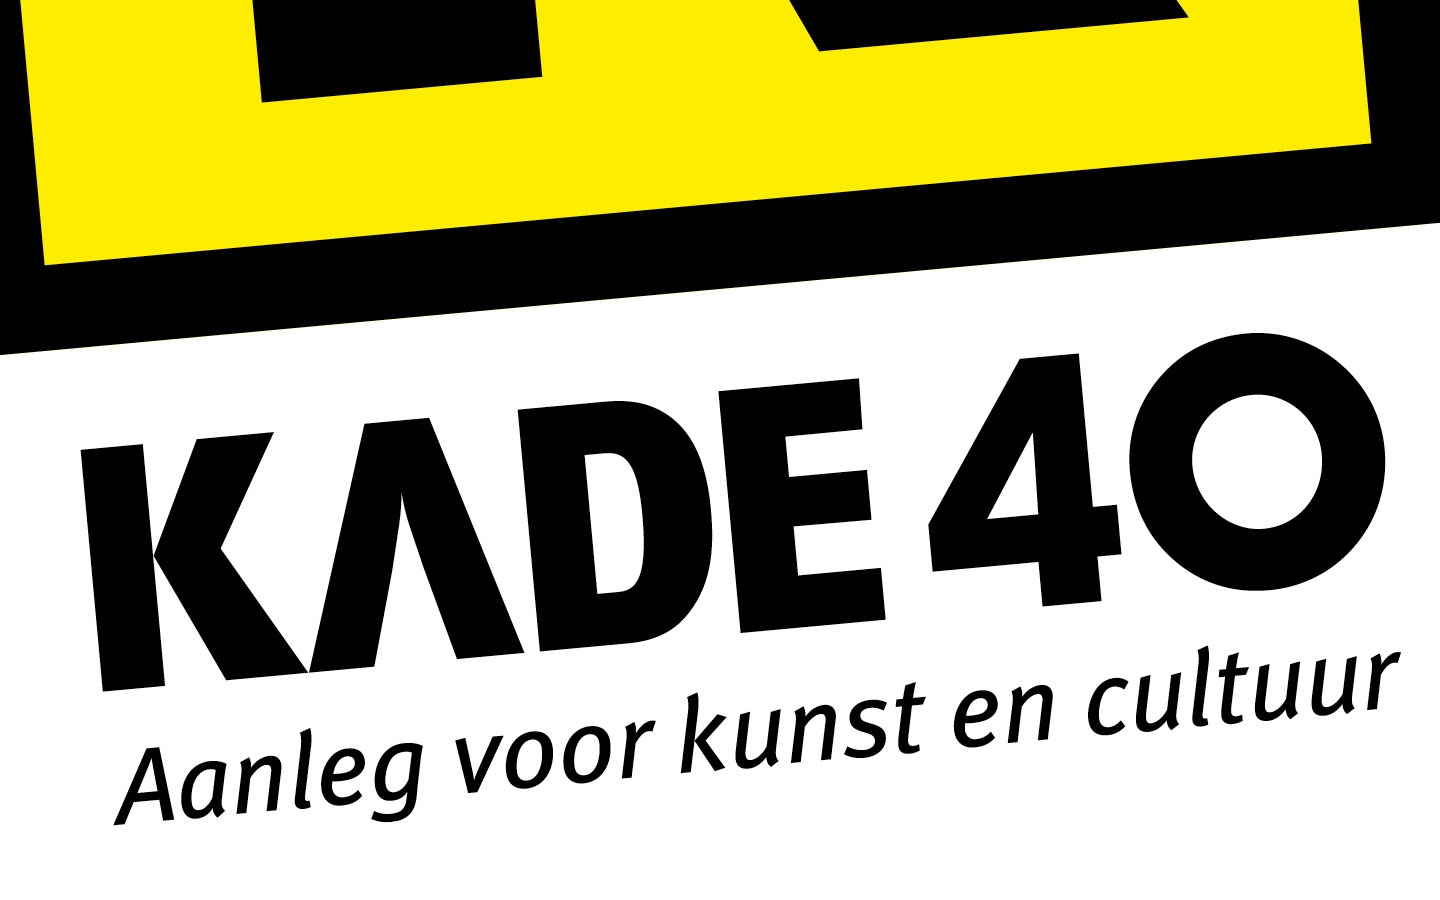 Kade40 communicatie